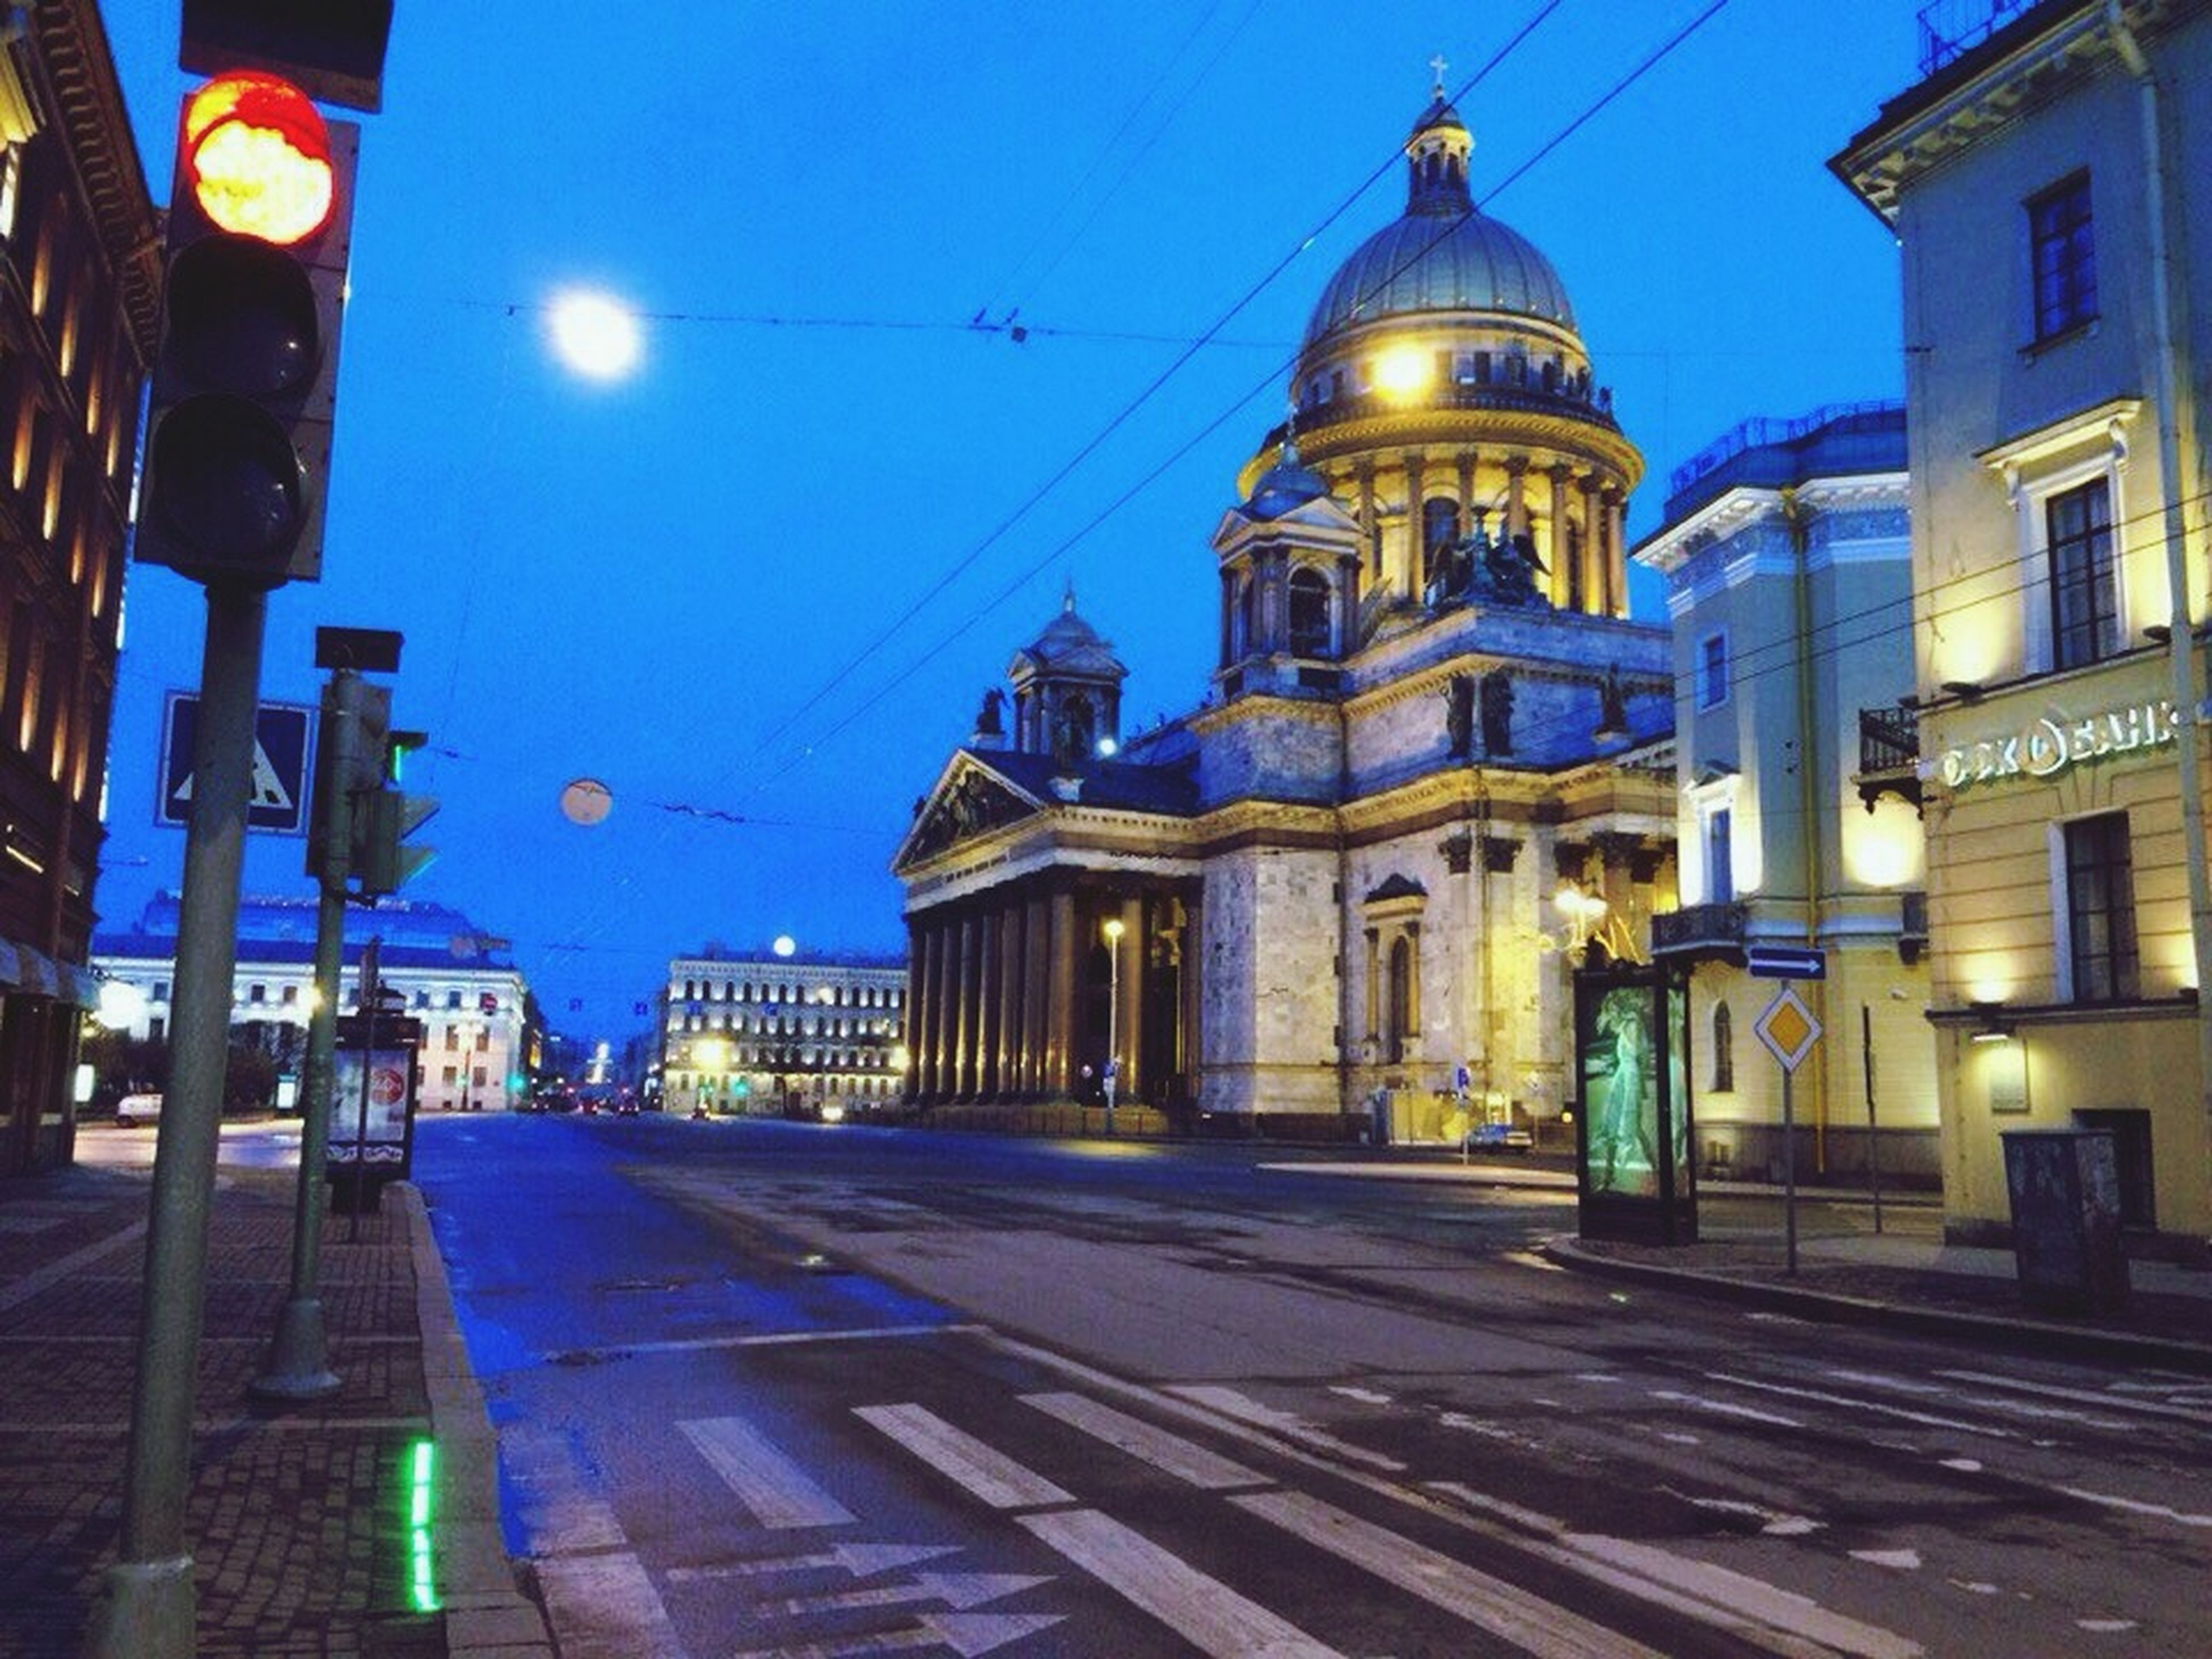 building exterior, architecture, built structure, illuminated, street light, religion, place of worship, church, night, blue, lighting equipment, spirituality, city, street, sky, travel destinations, dome, the way forward, cathedral